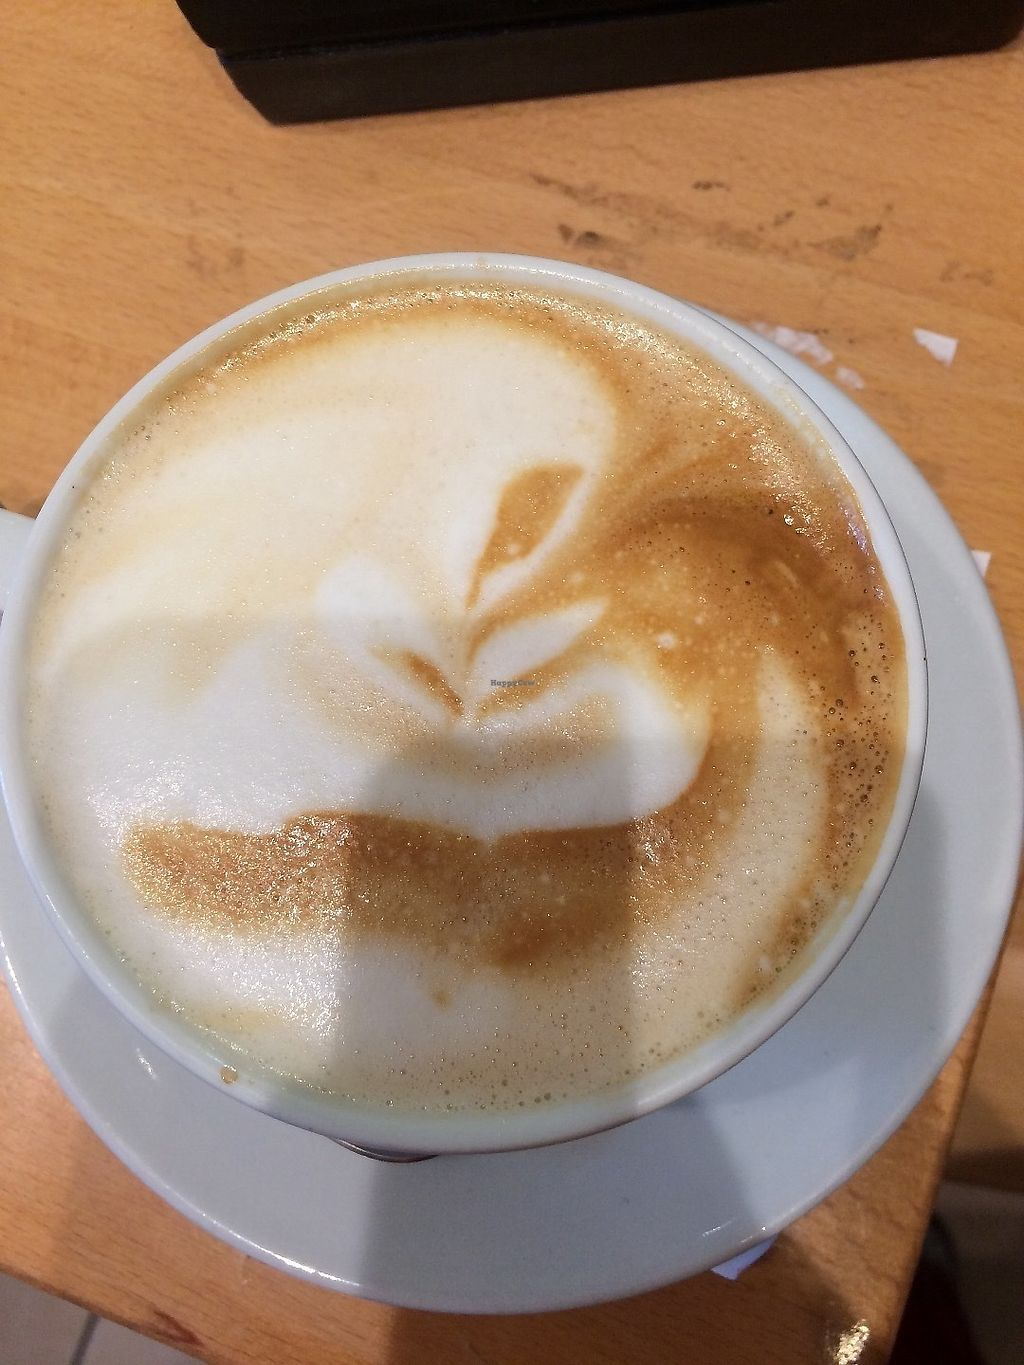 """Photo of Cosmos-Heart Cafe  by <a href=""""/members/profile/RoseTyler"""">RoseTyler</a> <br/>Delicious latte <br/> June 12, 2017  - <a href='/contact/abuse/image/32472/268407'>Report</a>"""